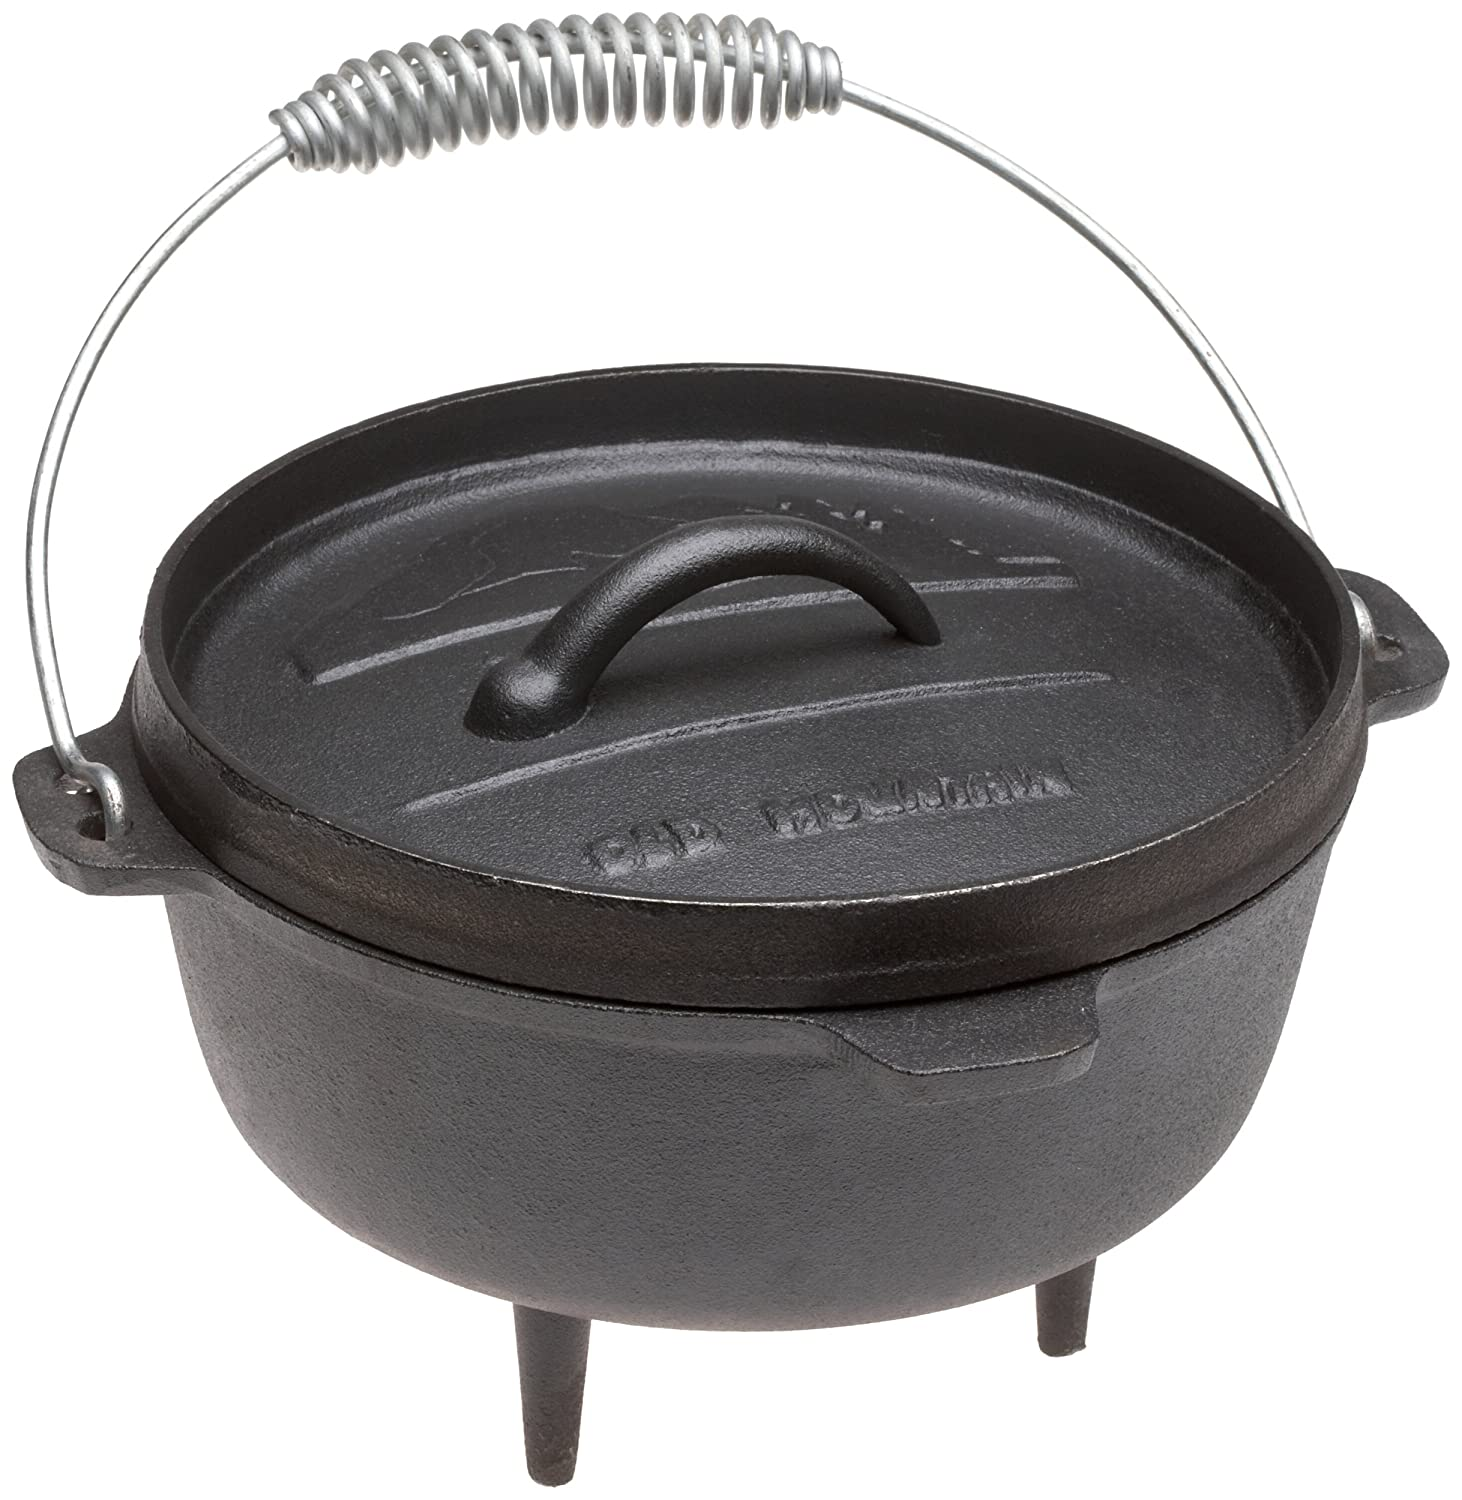 Old Mountain Pre Seasoned 10113 2 Quart Camp Oven with Flanged Lid, Feet and Spiral Bail Handle